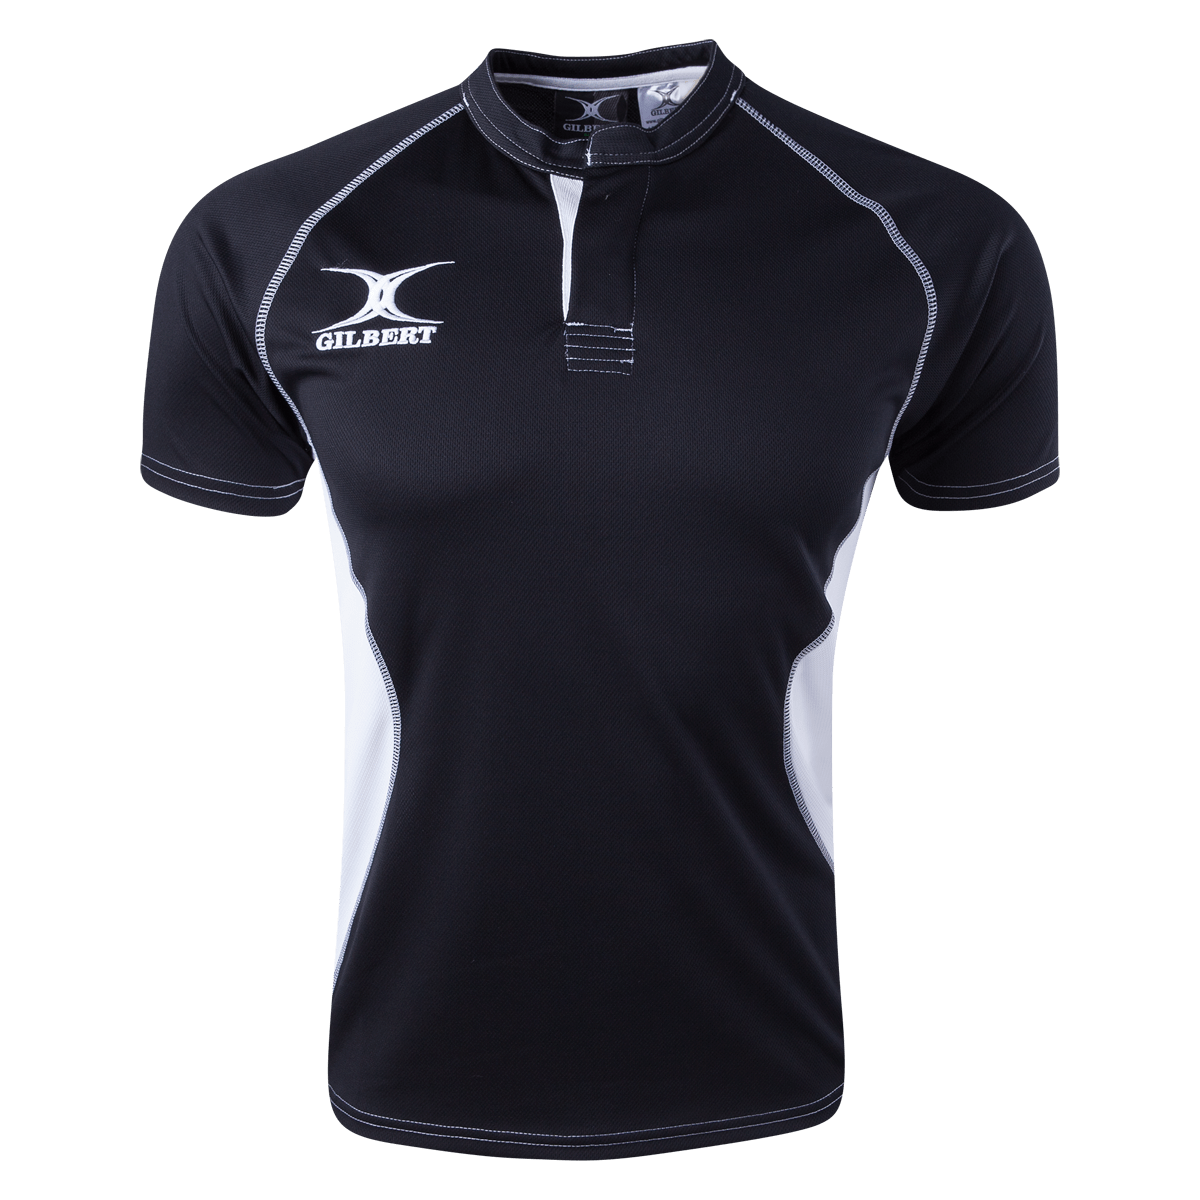 Black Gilbert Youth Xact V2 Rugby Jersey With White Text and Logos